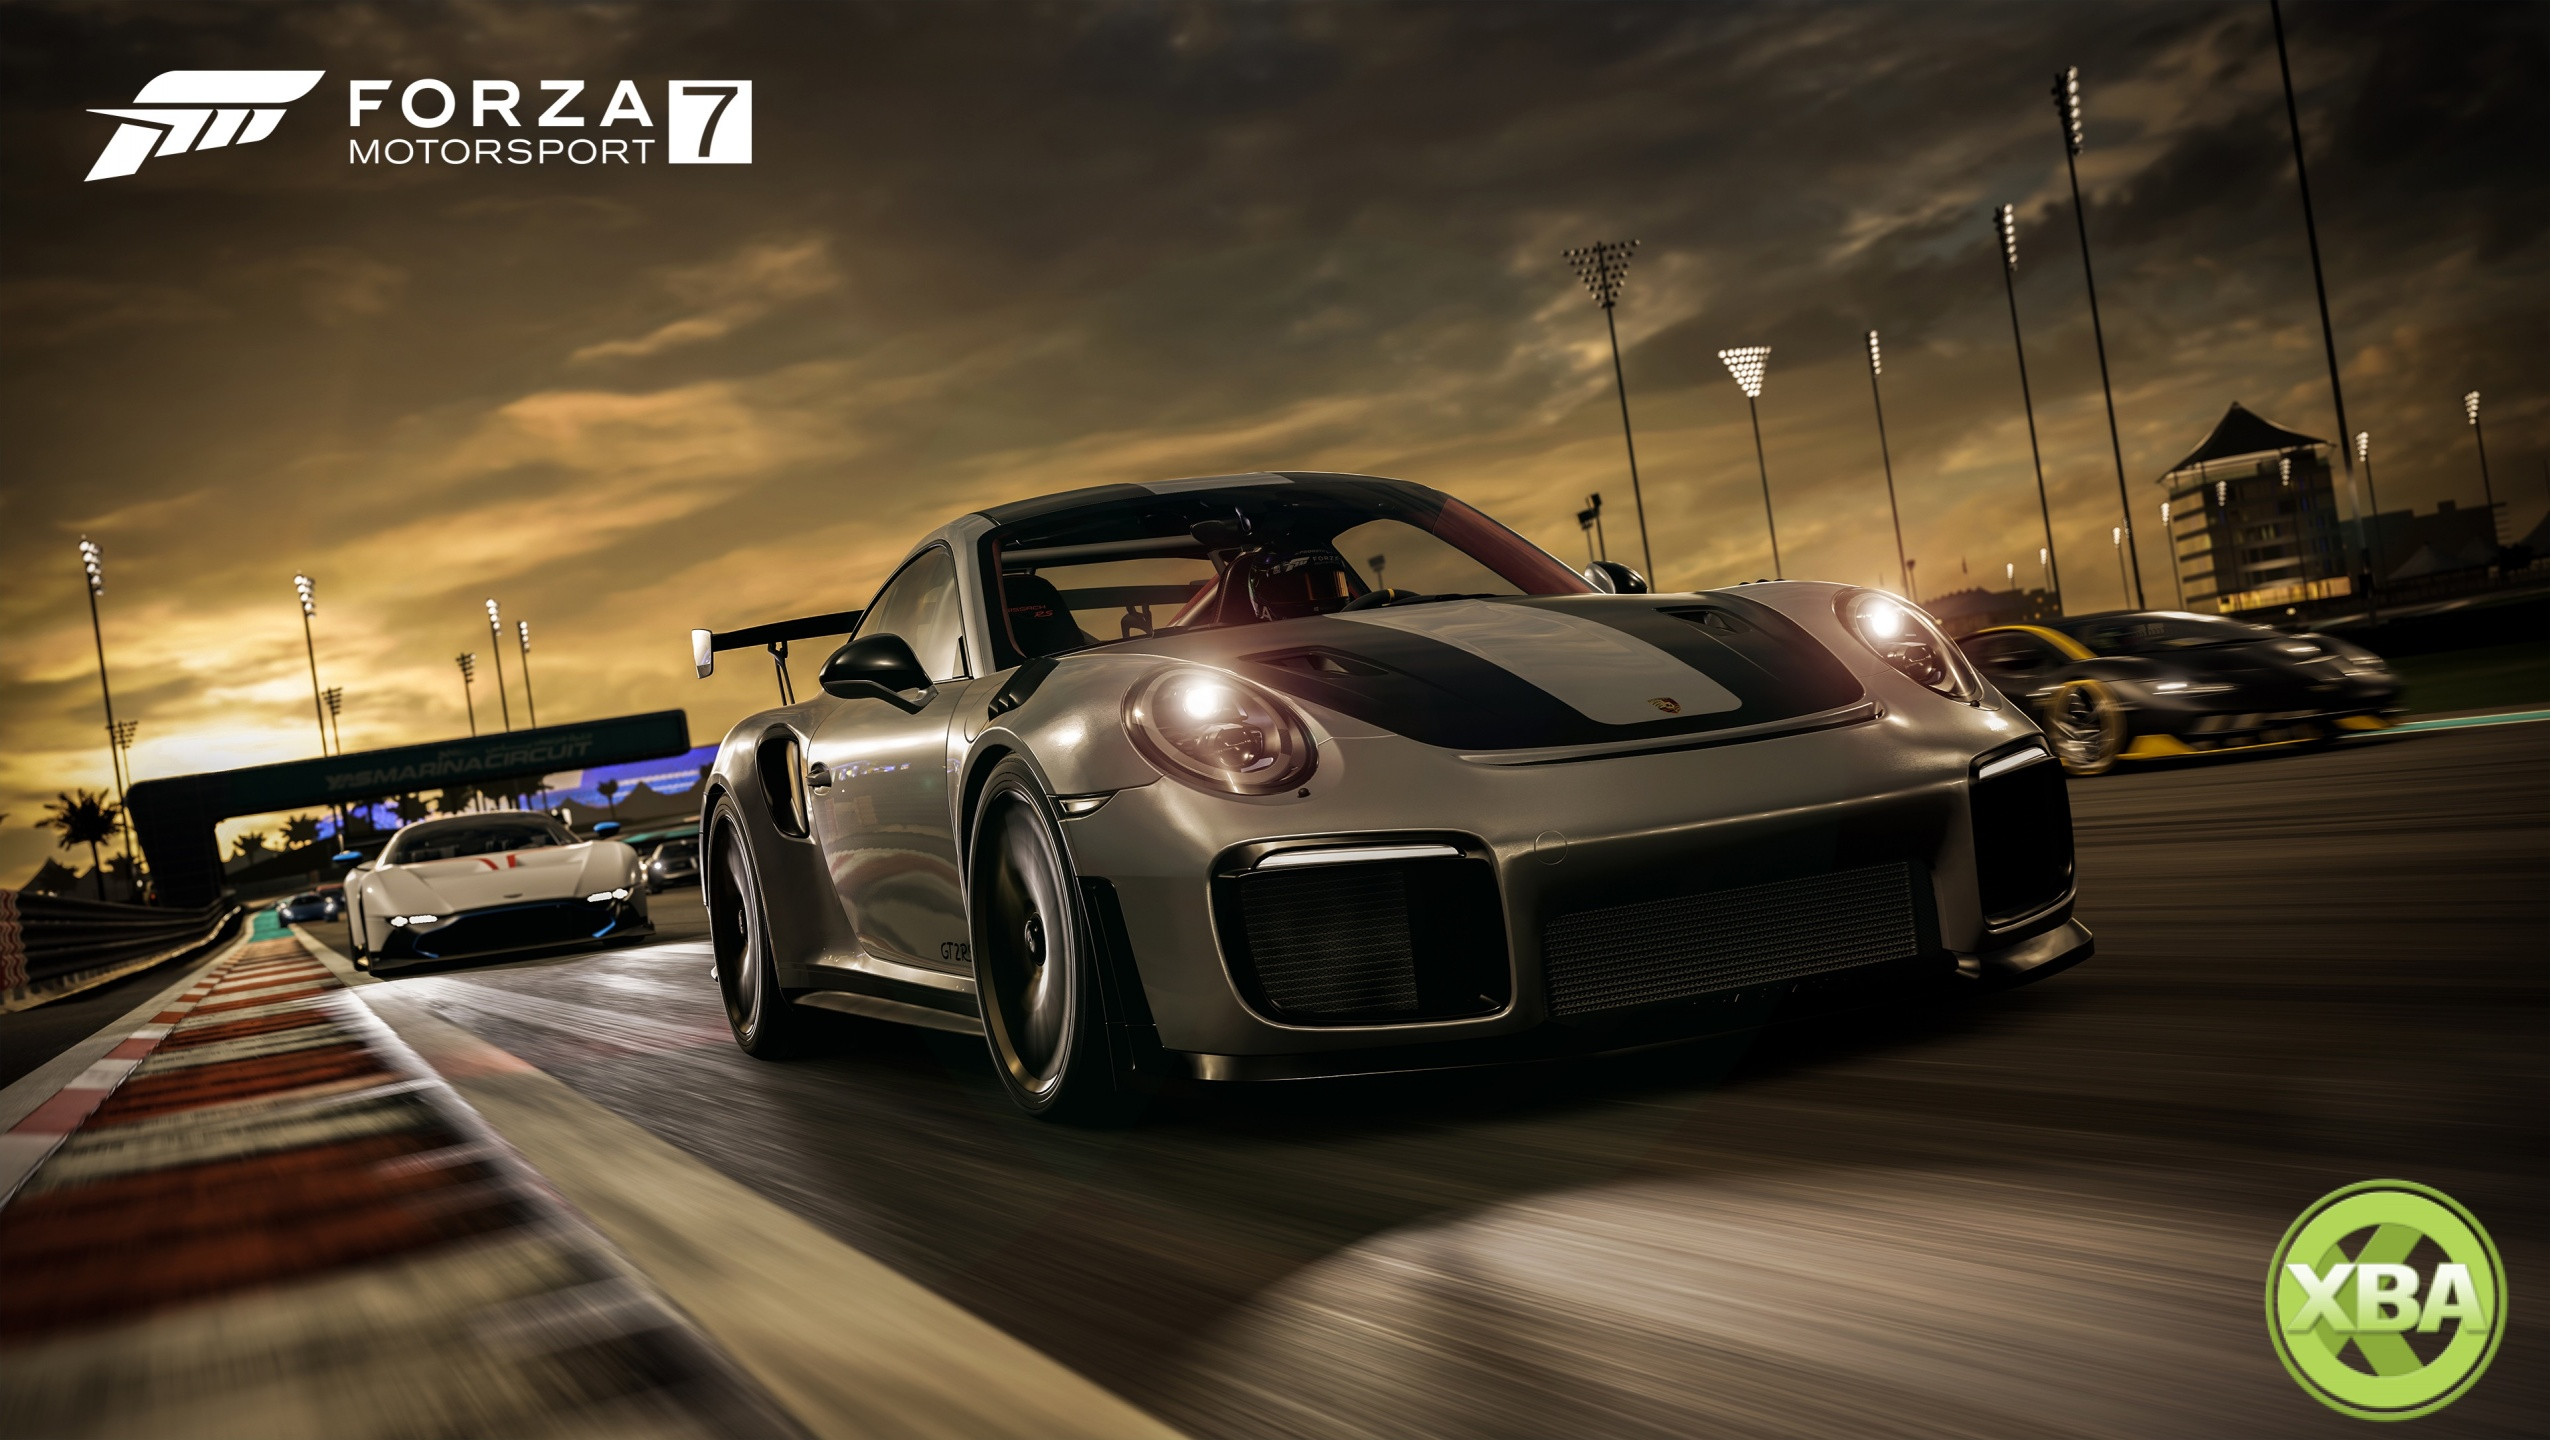 Get a taste of Forza Motorsport 7 when the demo hits Windows 10 PC and Xbox One later this month